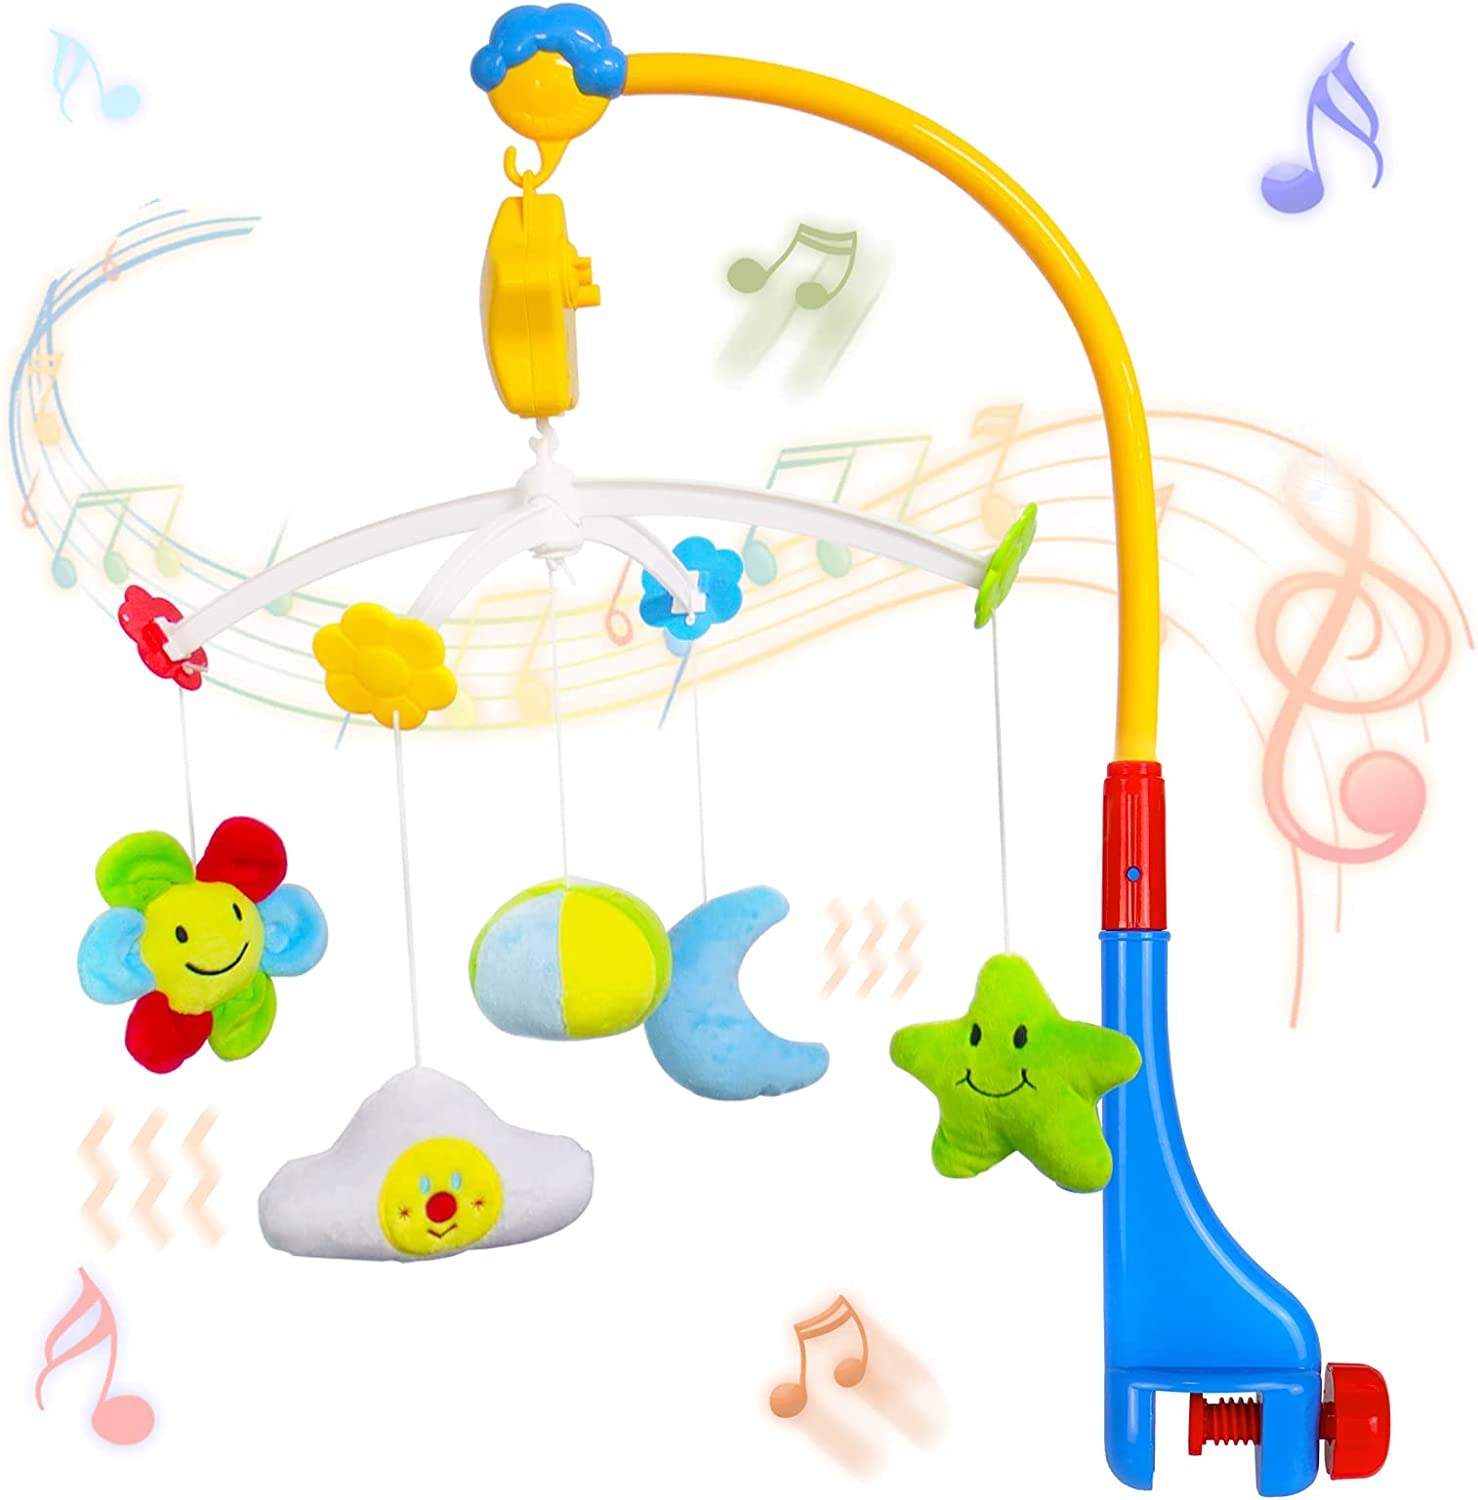 Baby Mobile for Crib Animer and price revision Nursery with Mobiles Bassinet SEAL limited product Toys